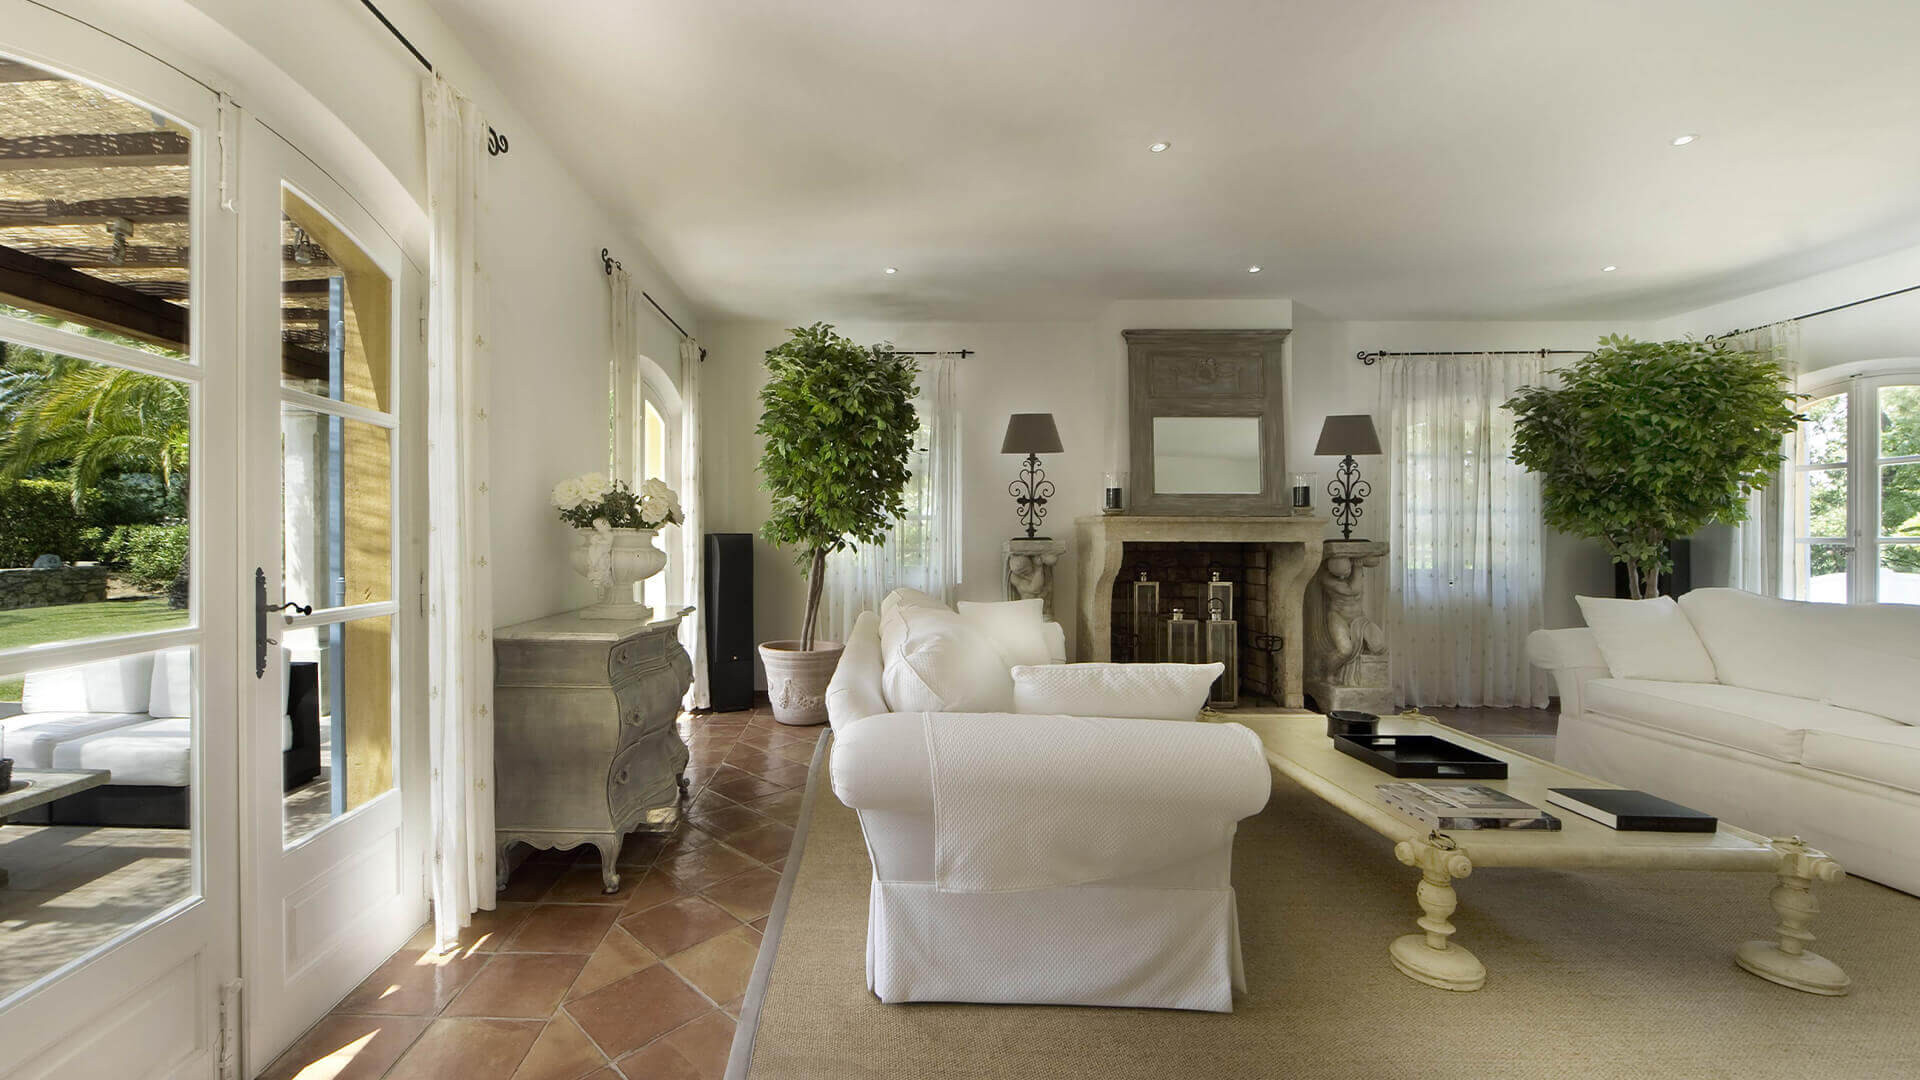 Saint Tropez Villa renaissance style living room with white sofas